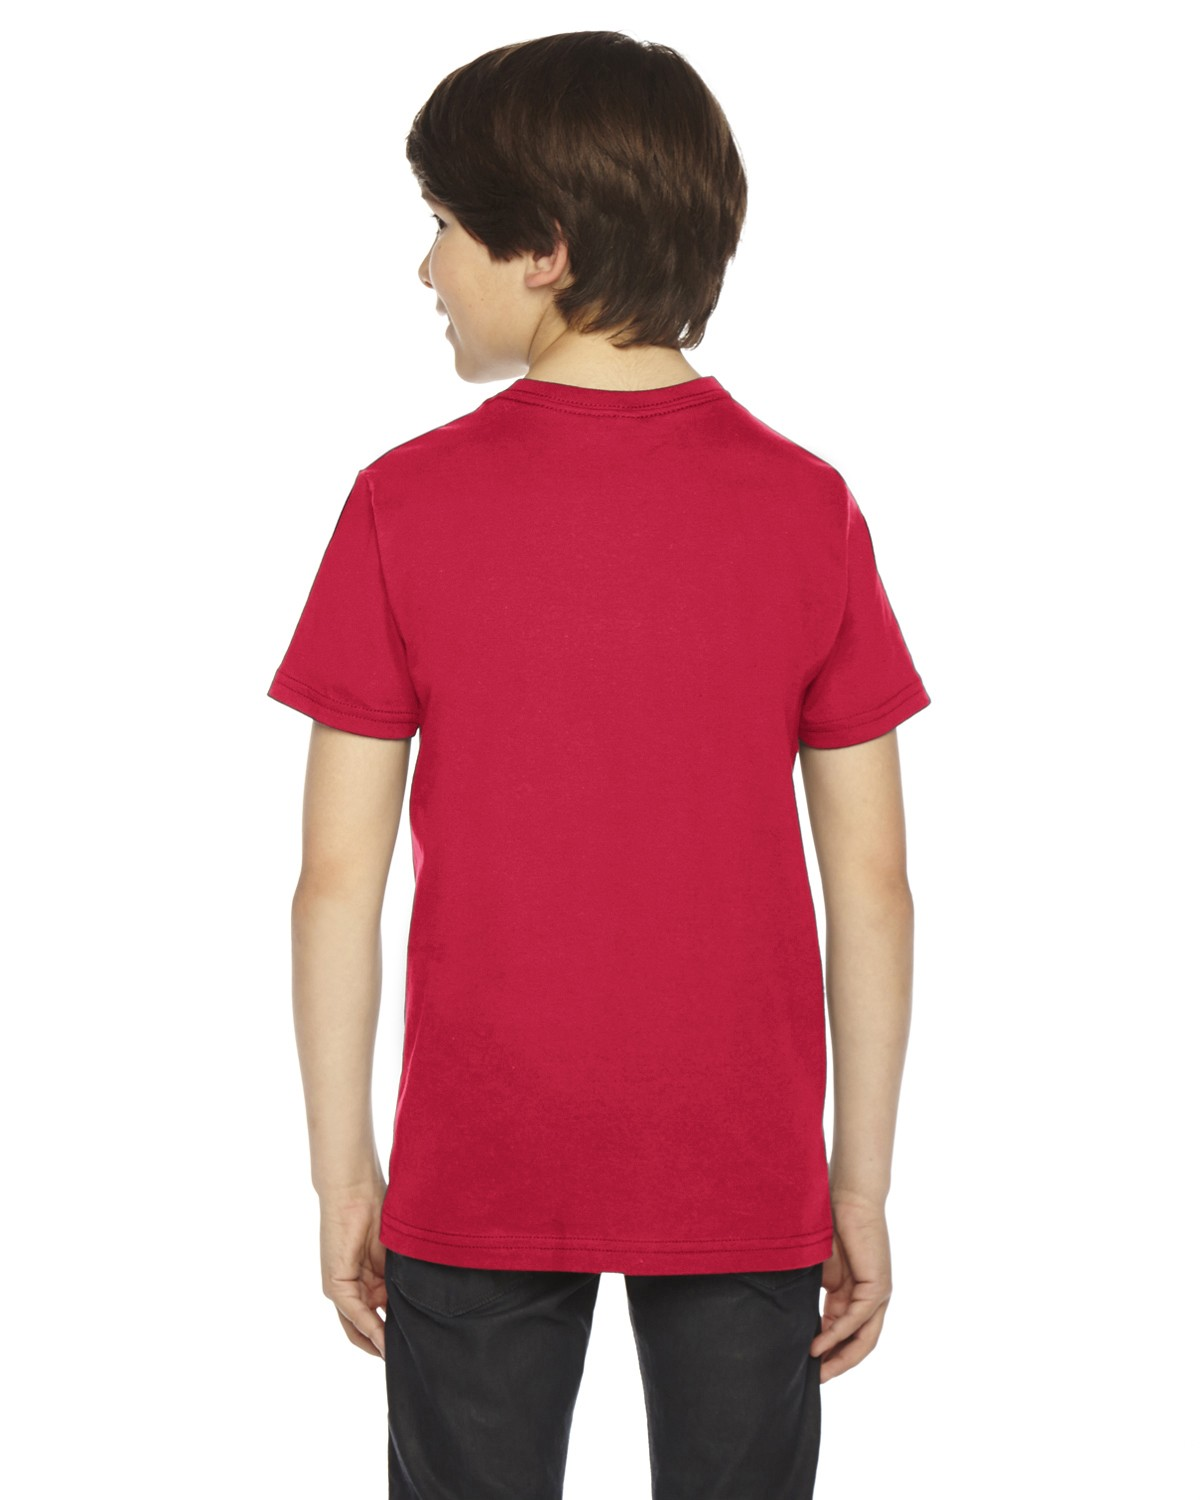 2201 American Apparel RED